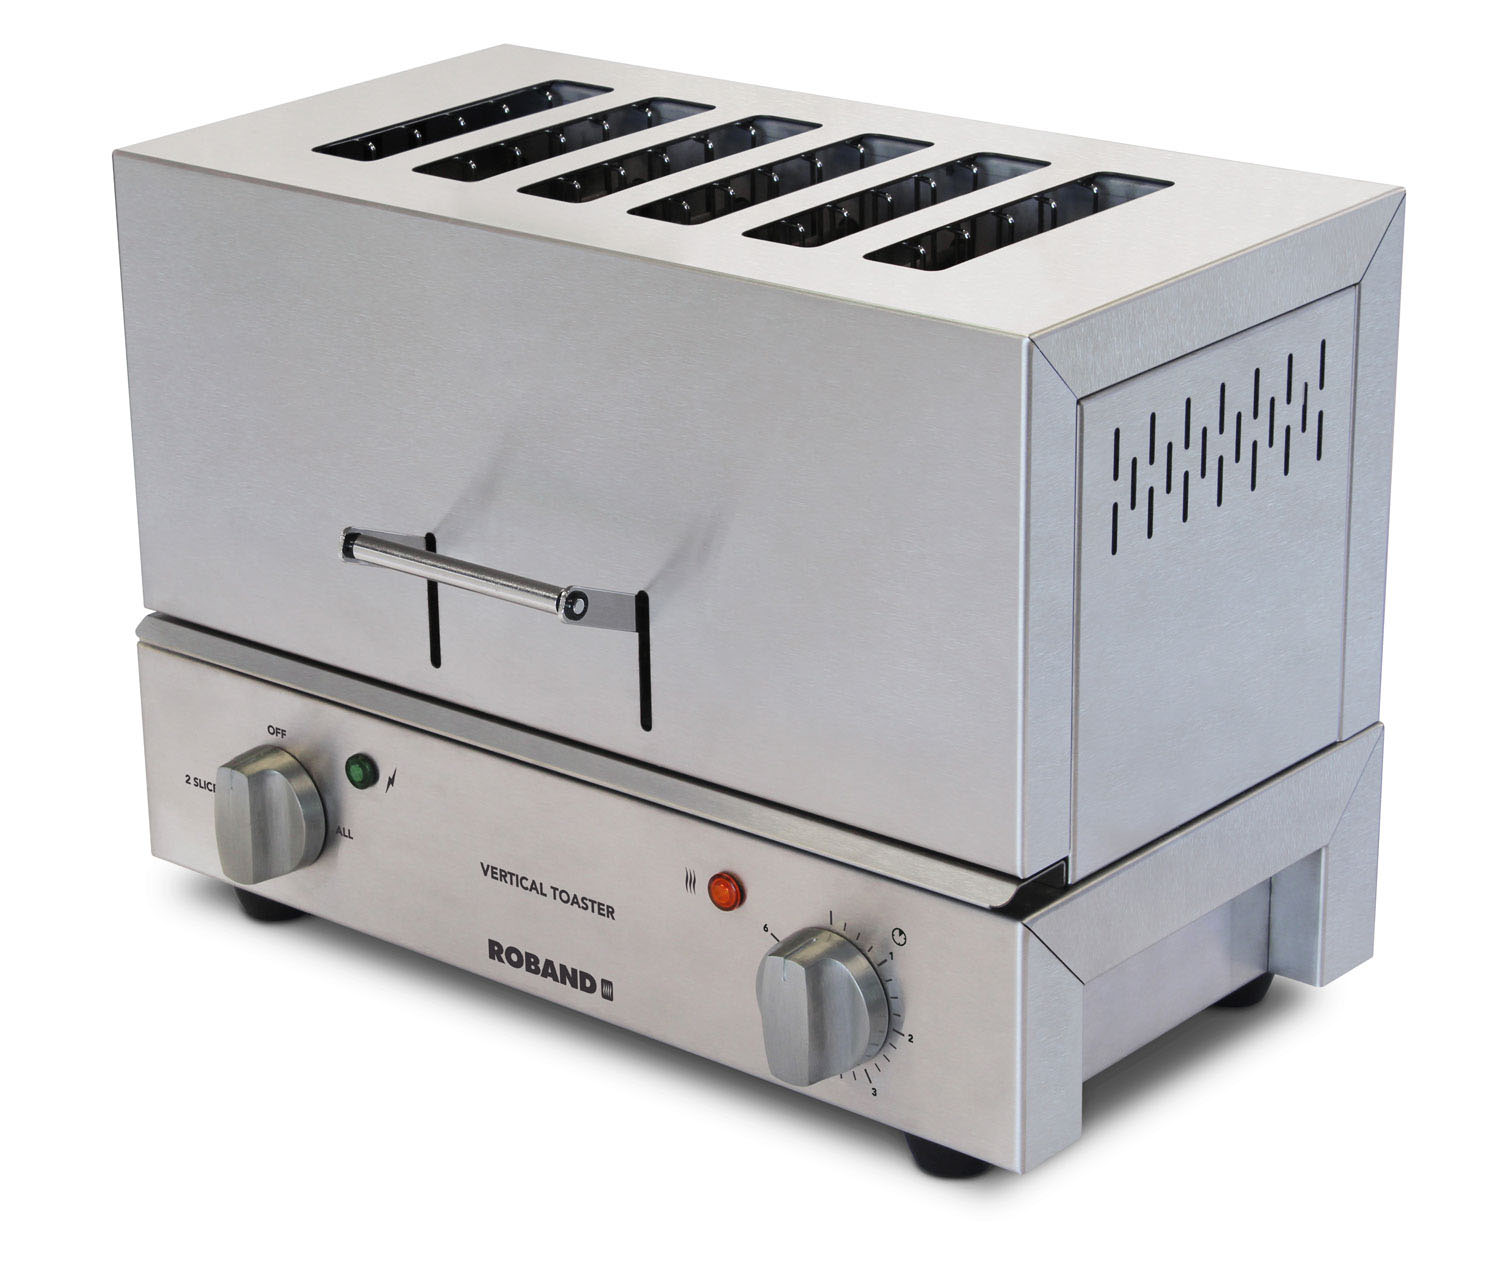 Roband TC66 Vertical Toaster